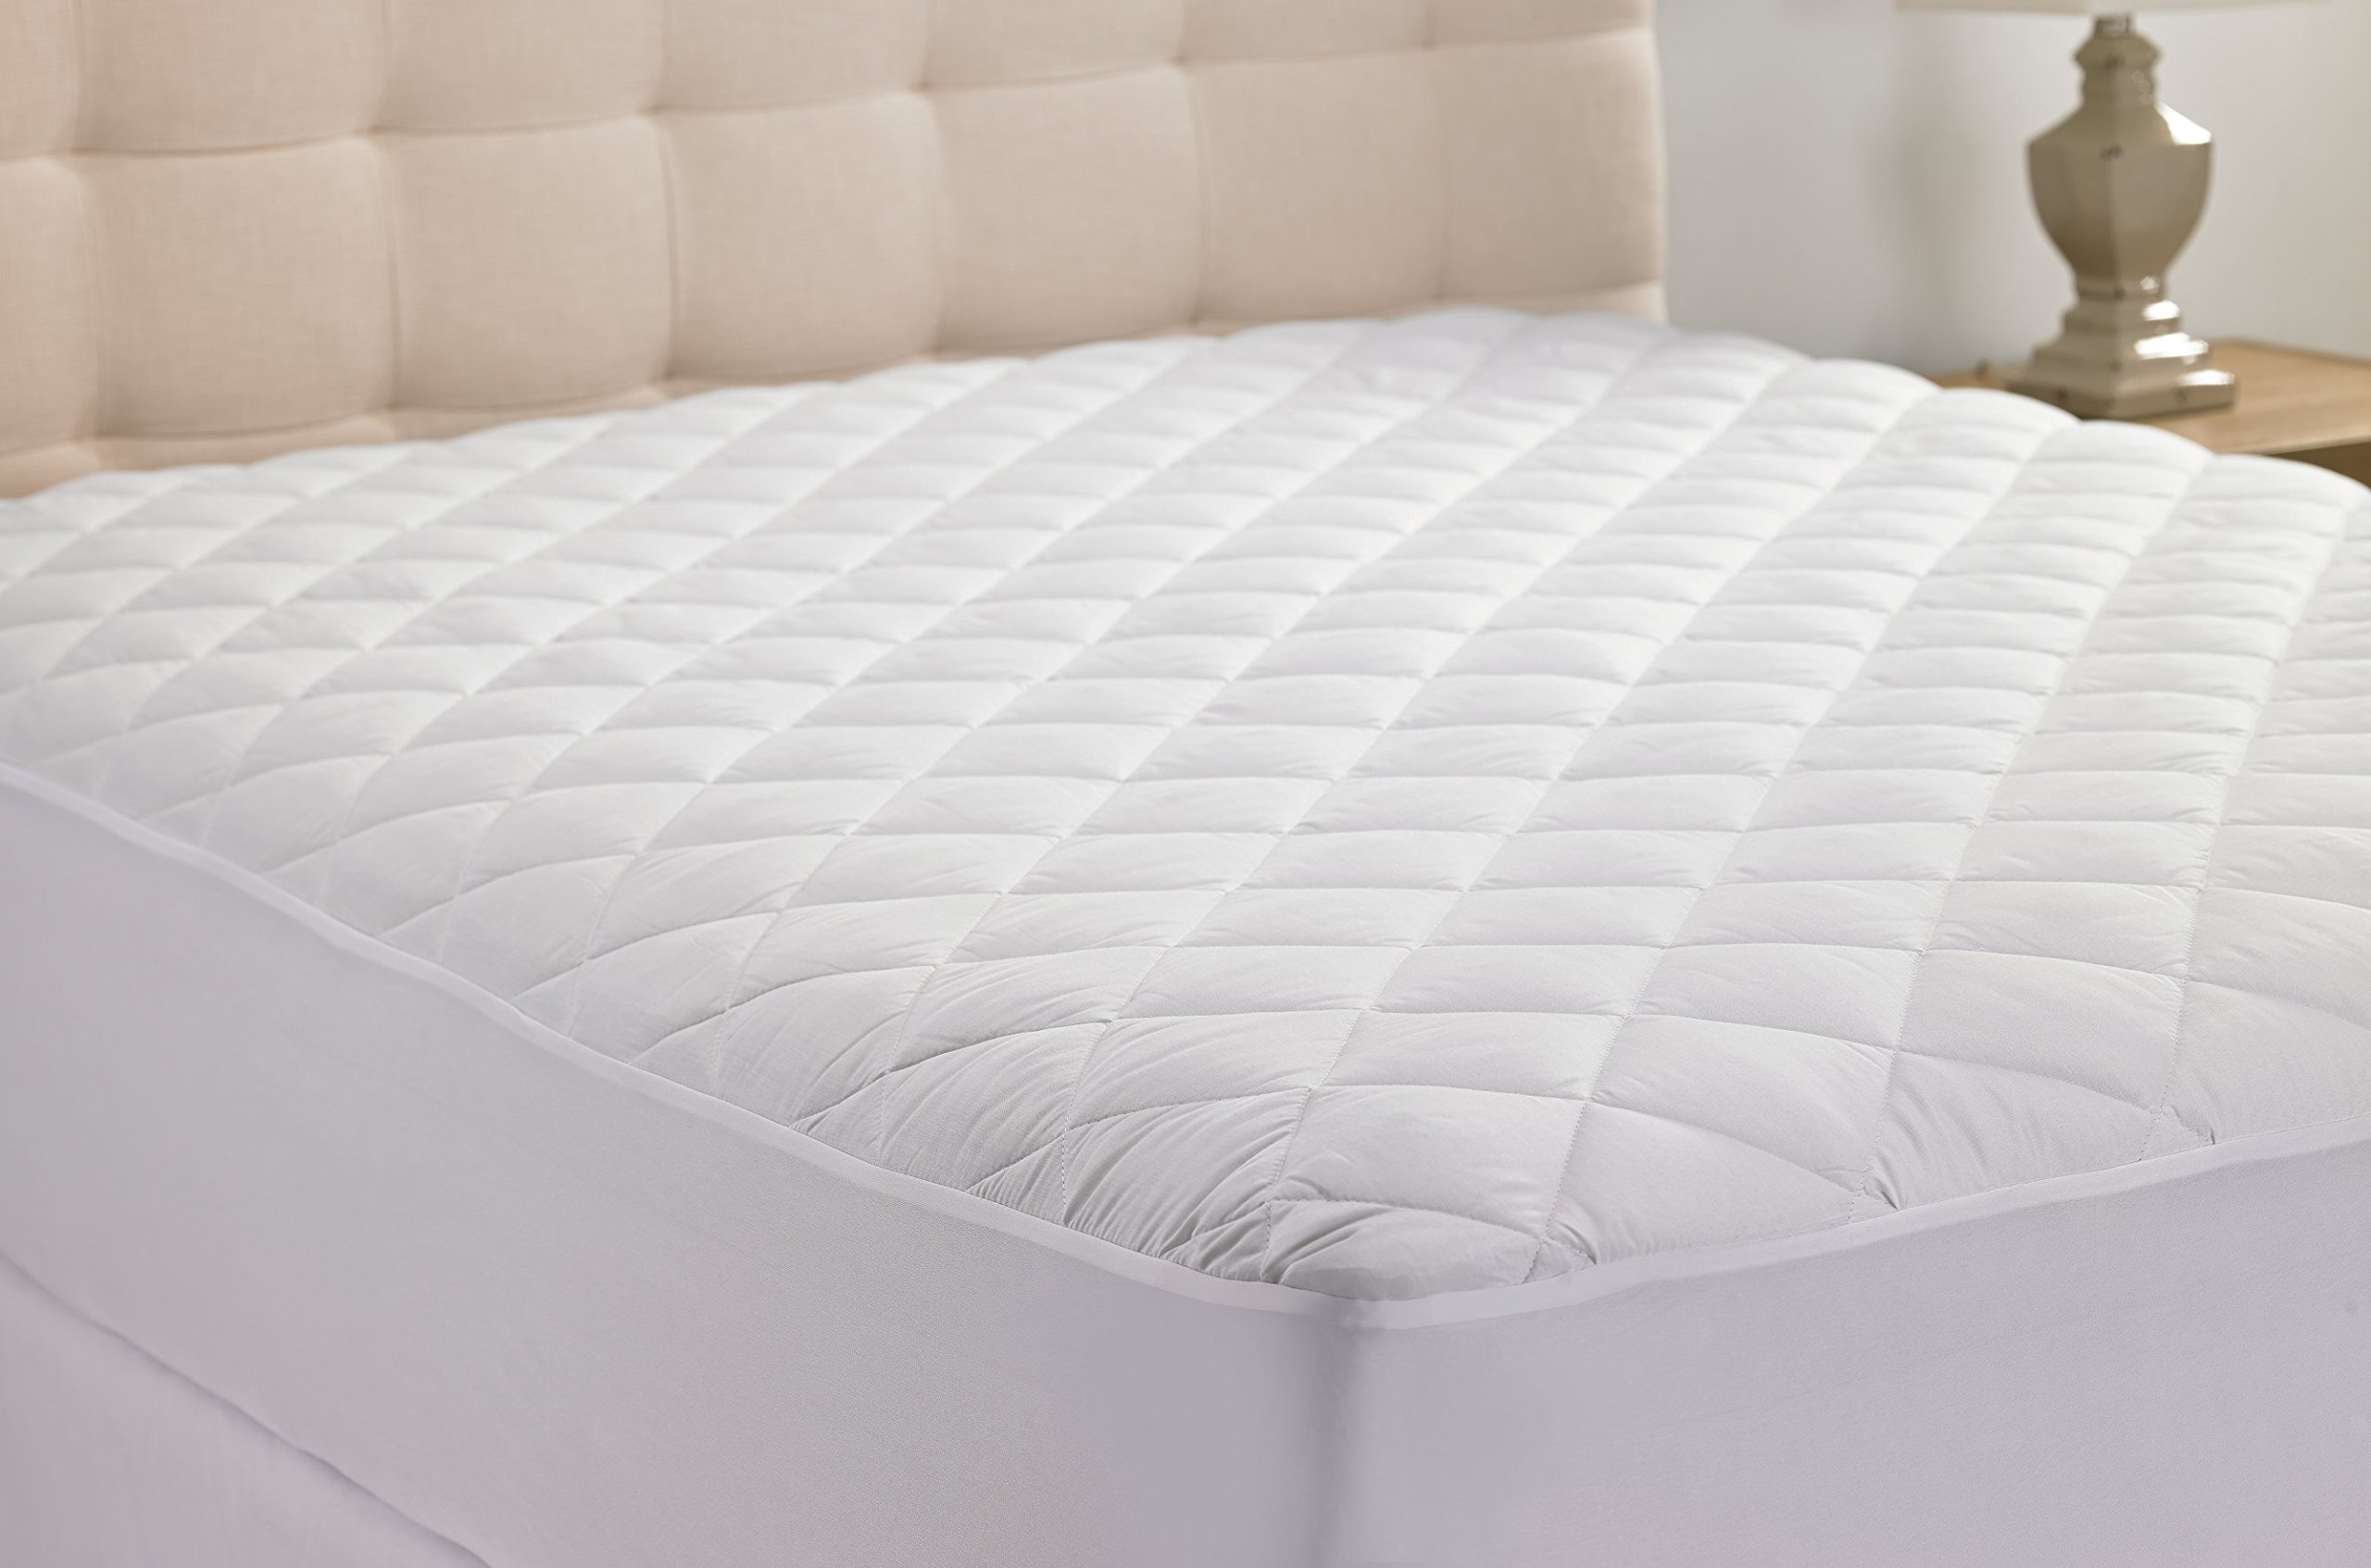 Hanna Kay Hypoallergenic Quilted Stretch-to-Fit Mattress Pad, 10 Year Warranty-Clyne Collection (King)